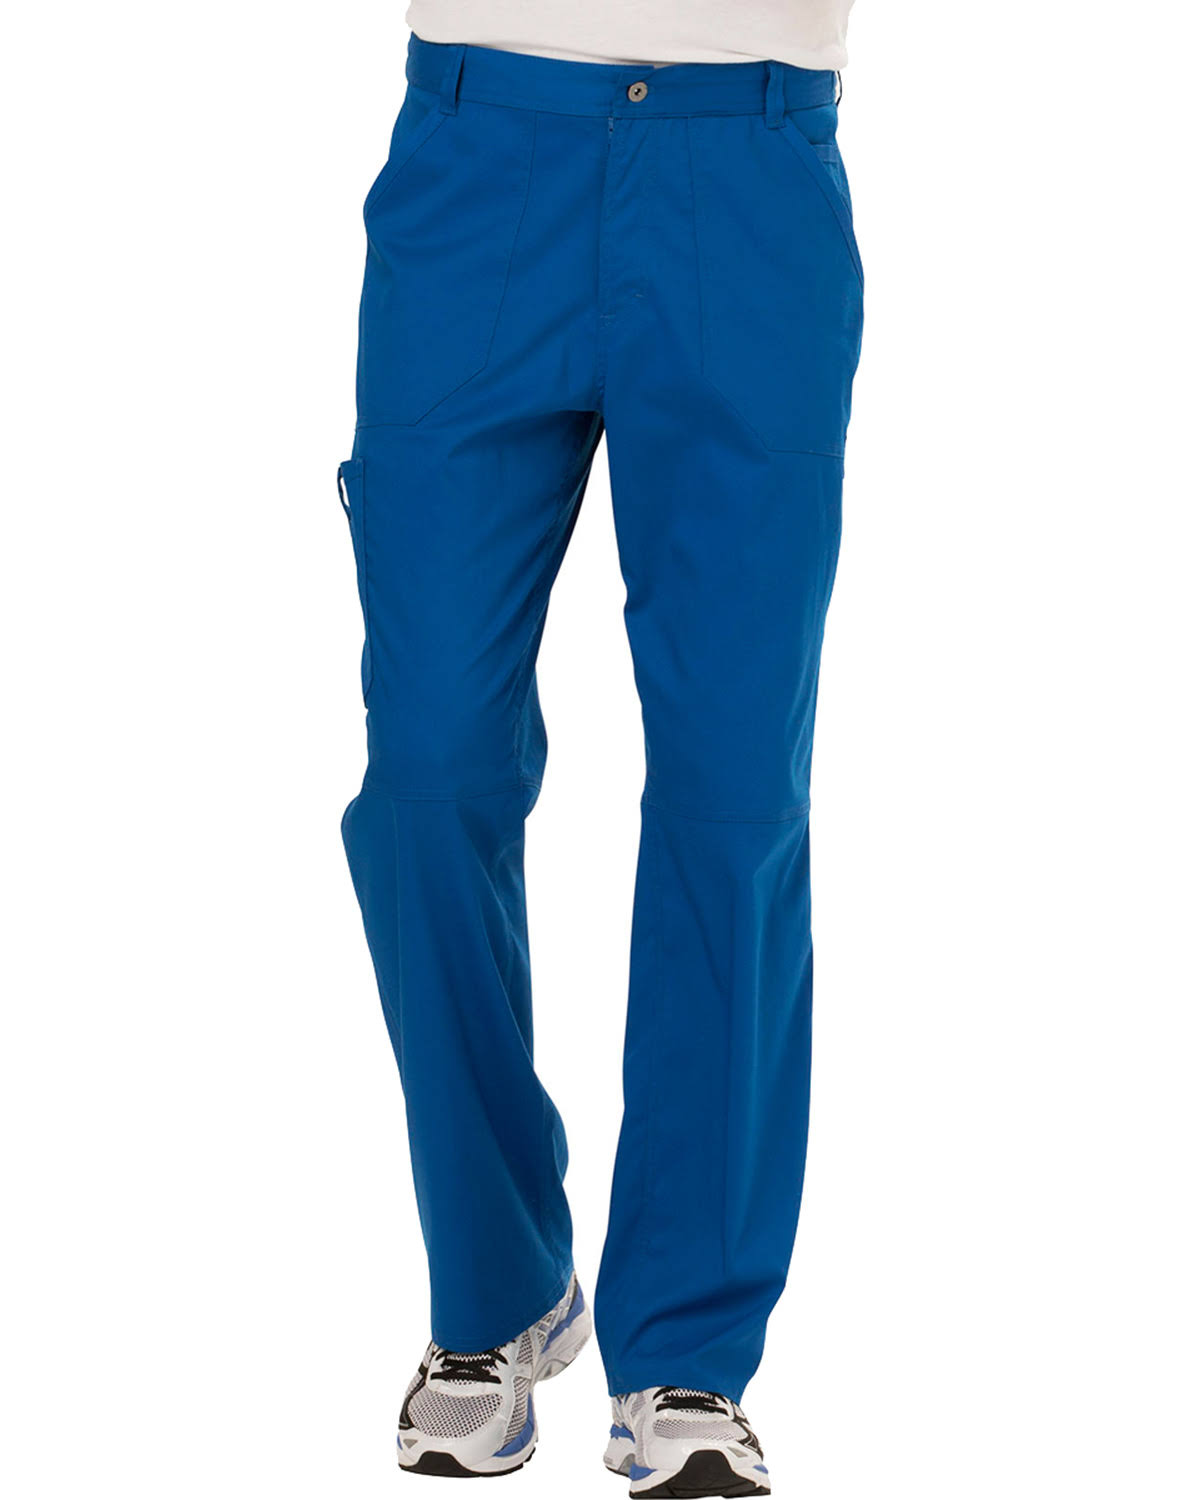 Cherokee Workwear Revolution Men's Fly Front Pant - Royal (M)